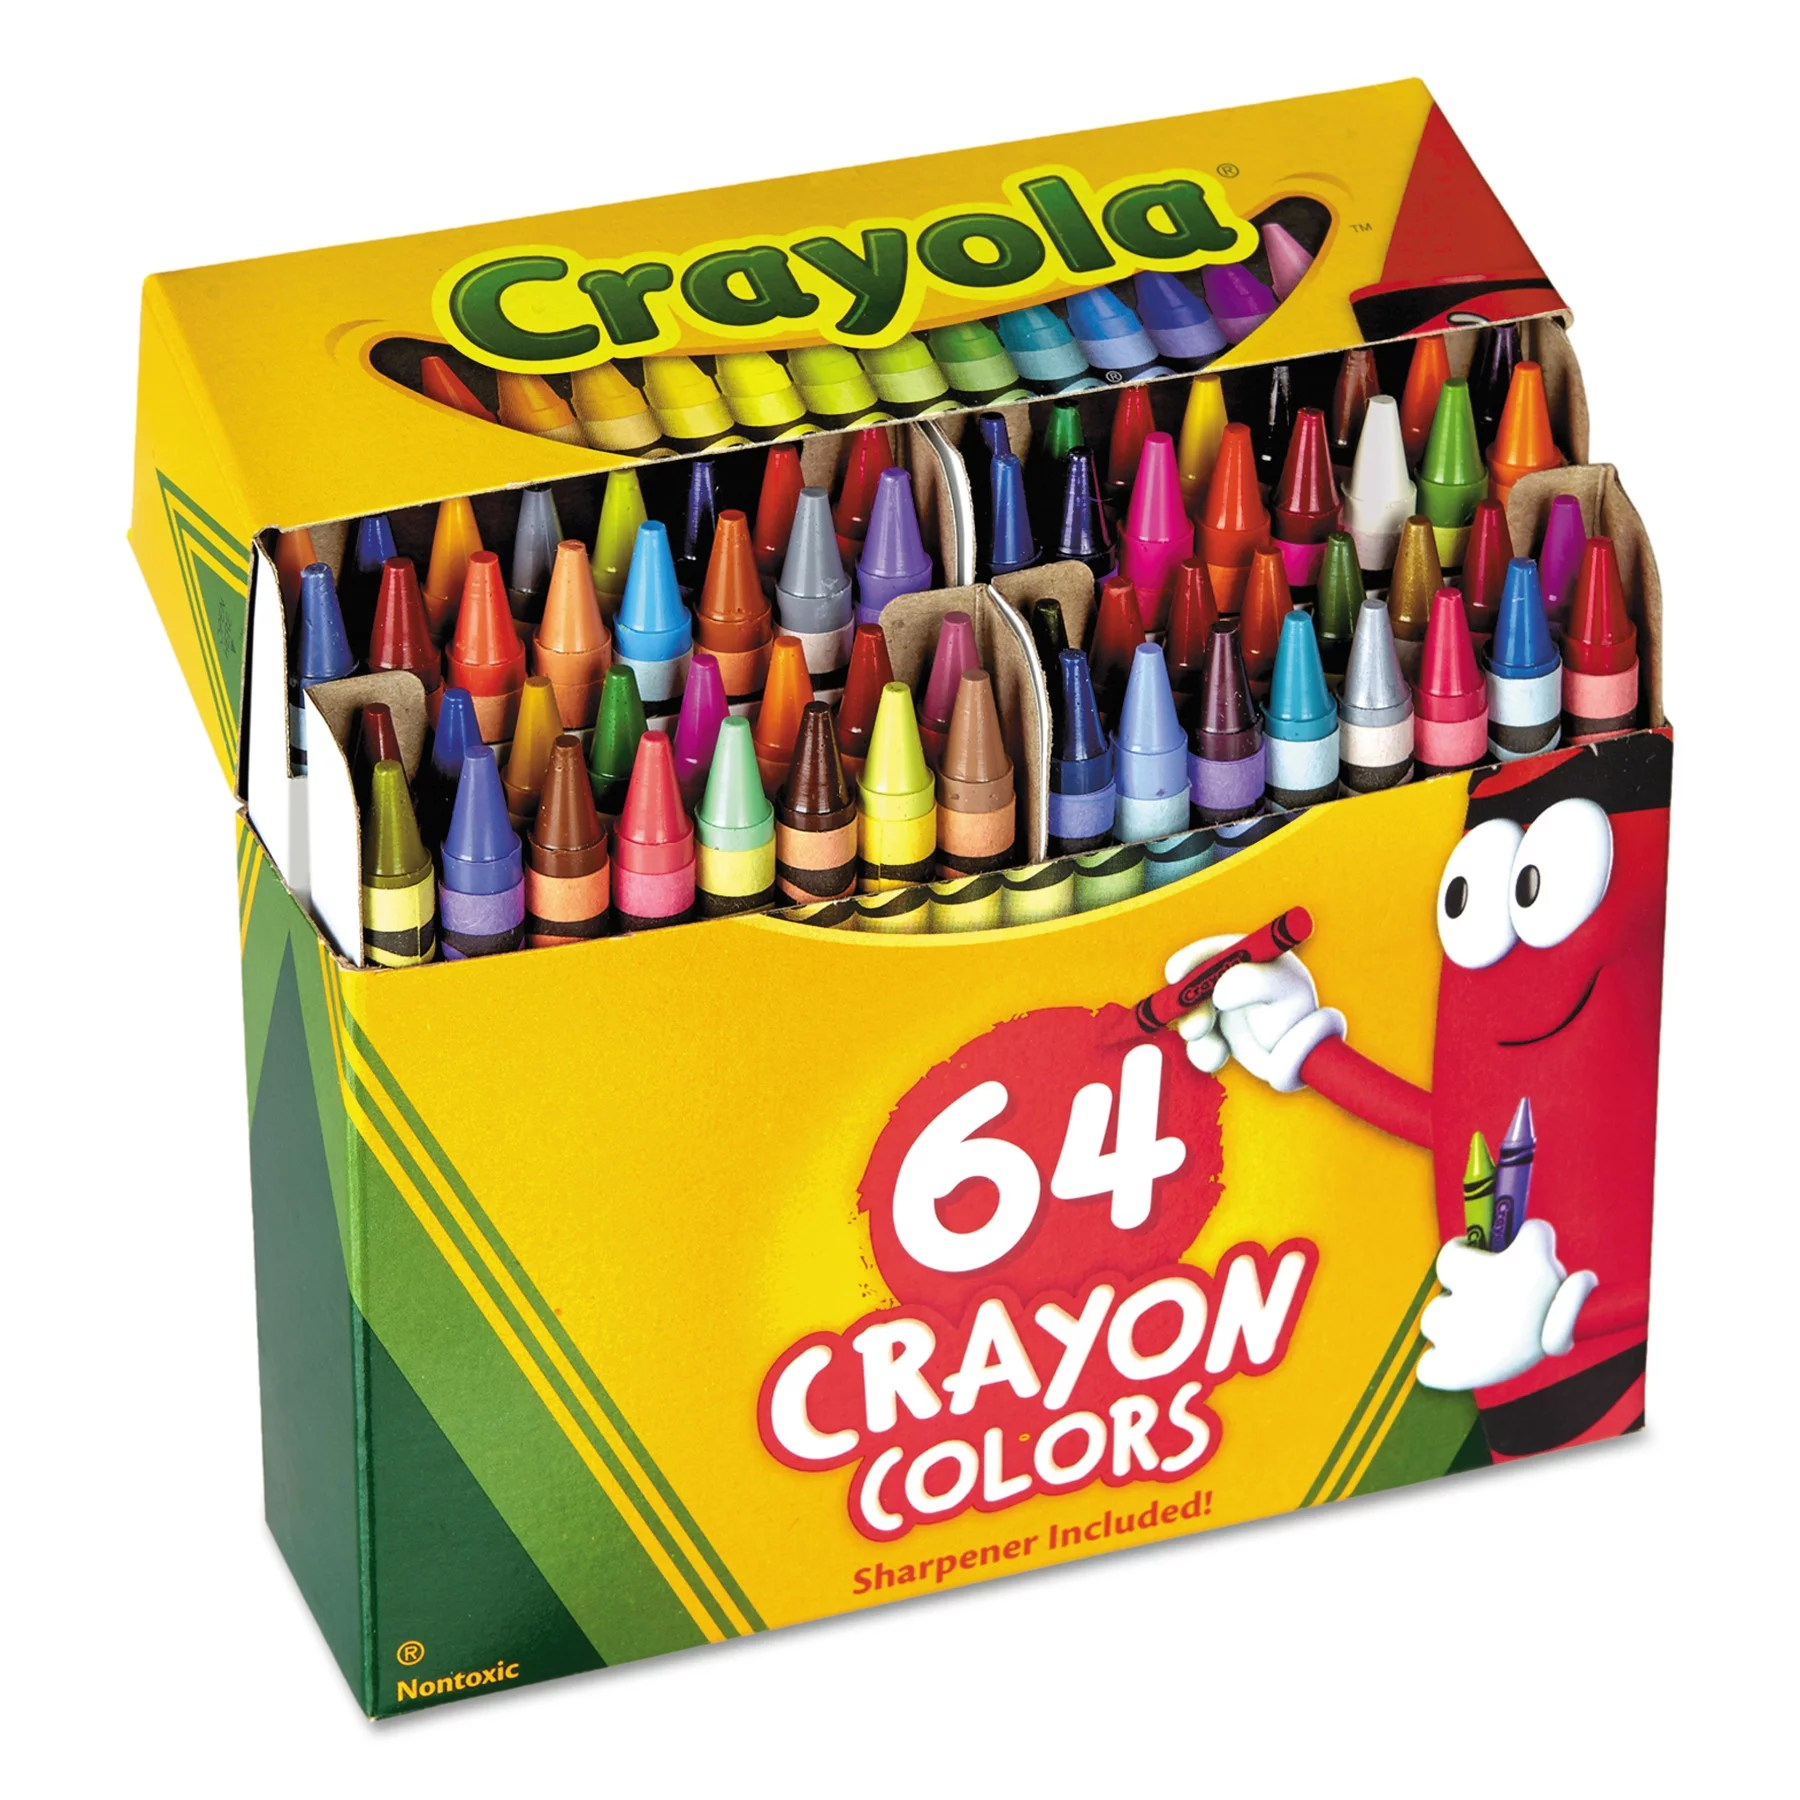 Crayola Crayons Box With Built In Sharpener 4 Sizes 64